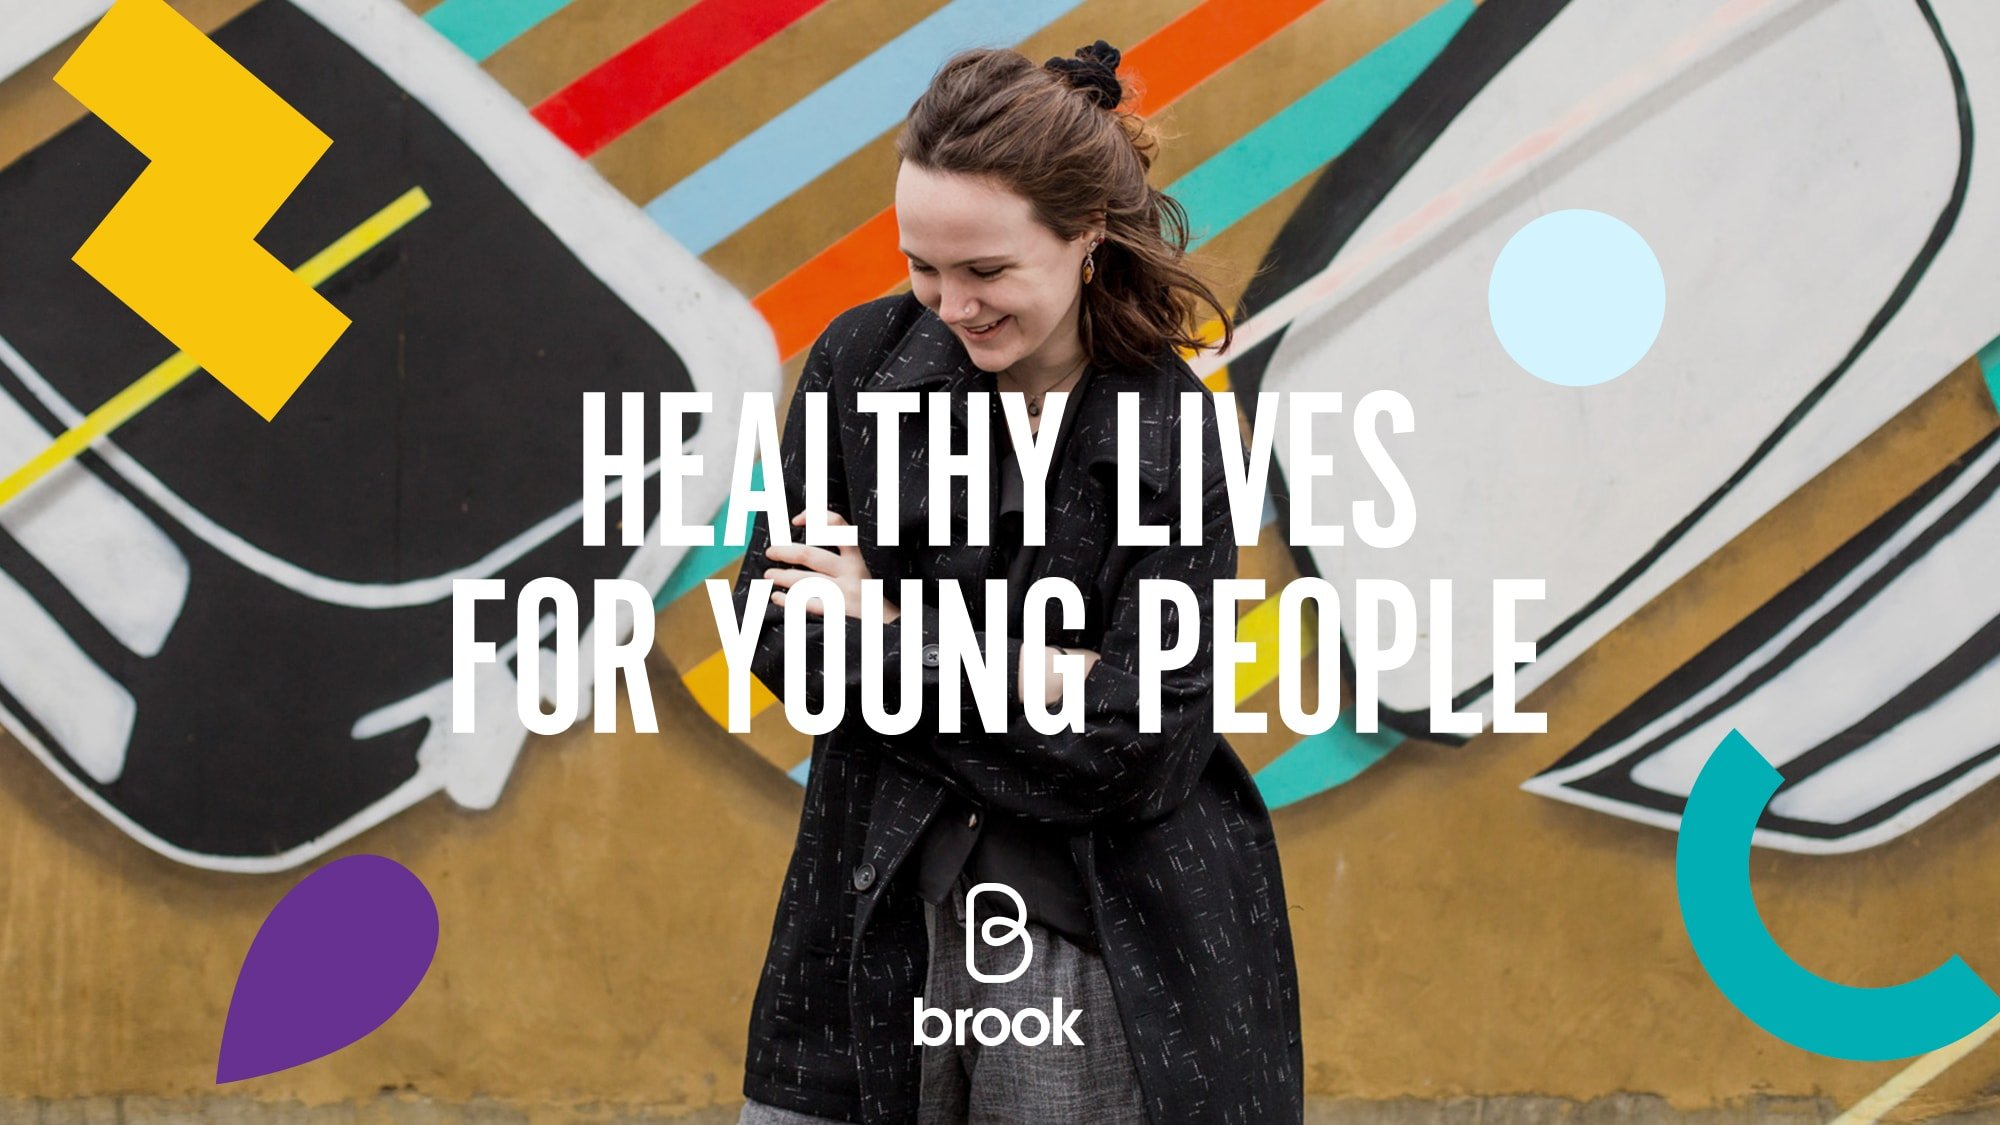 Brook healthy lives for young people tagline image